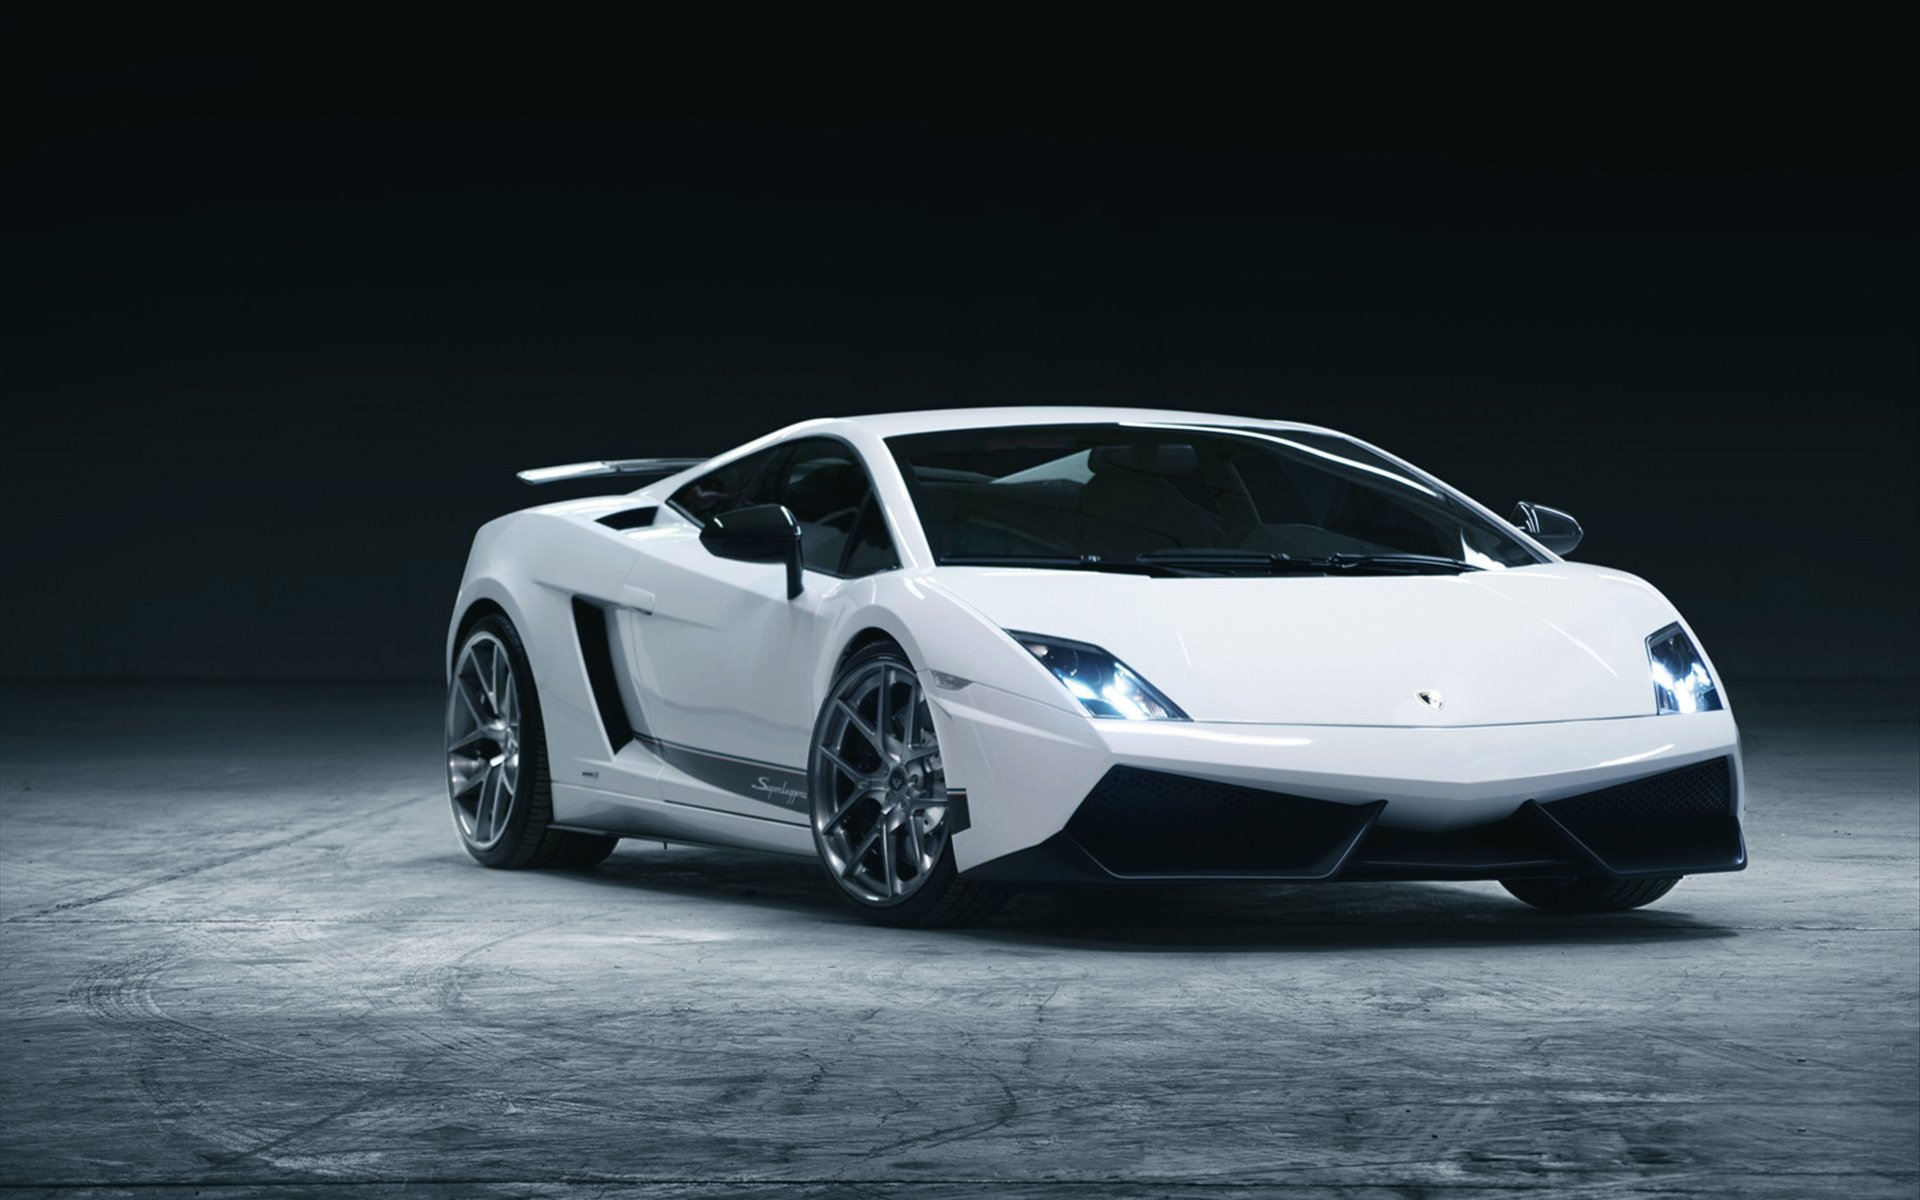 2012 Vorsteiner Lamborghini Gallardo Wallpapers HD Wallpapers 1920x1200